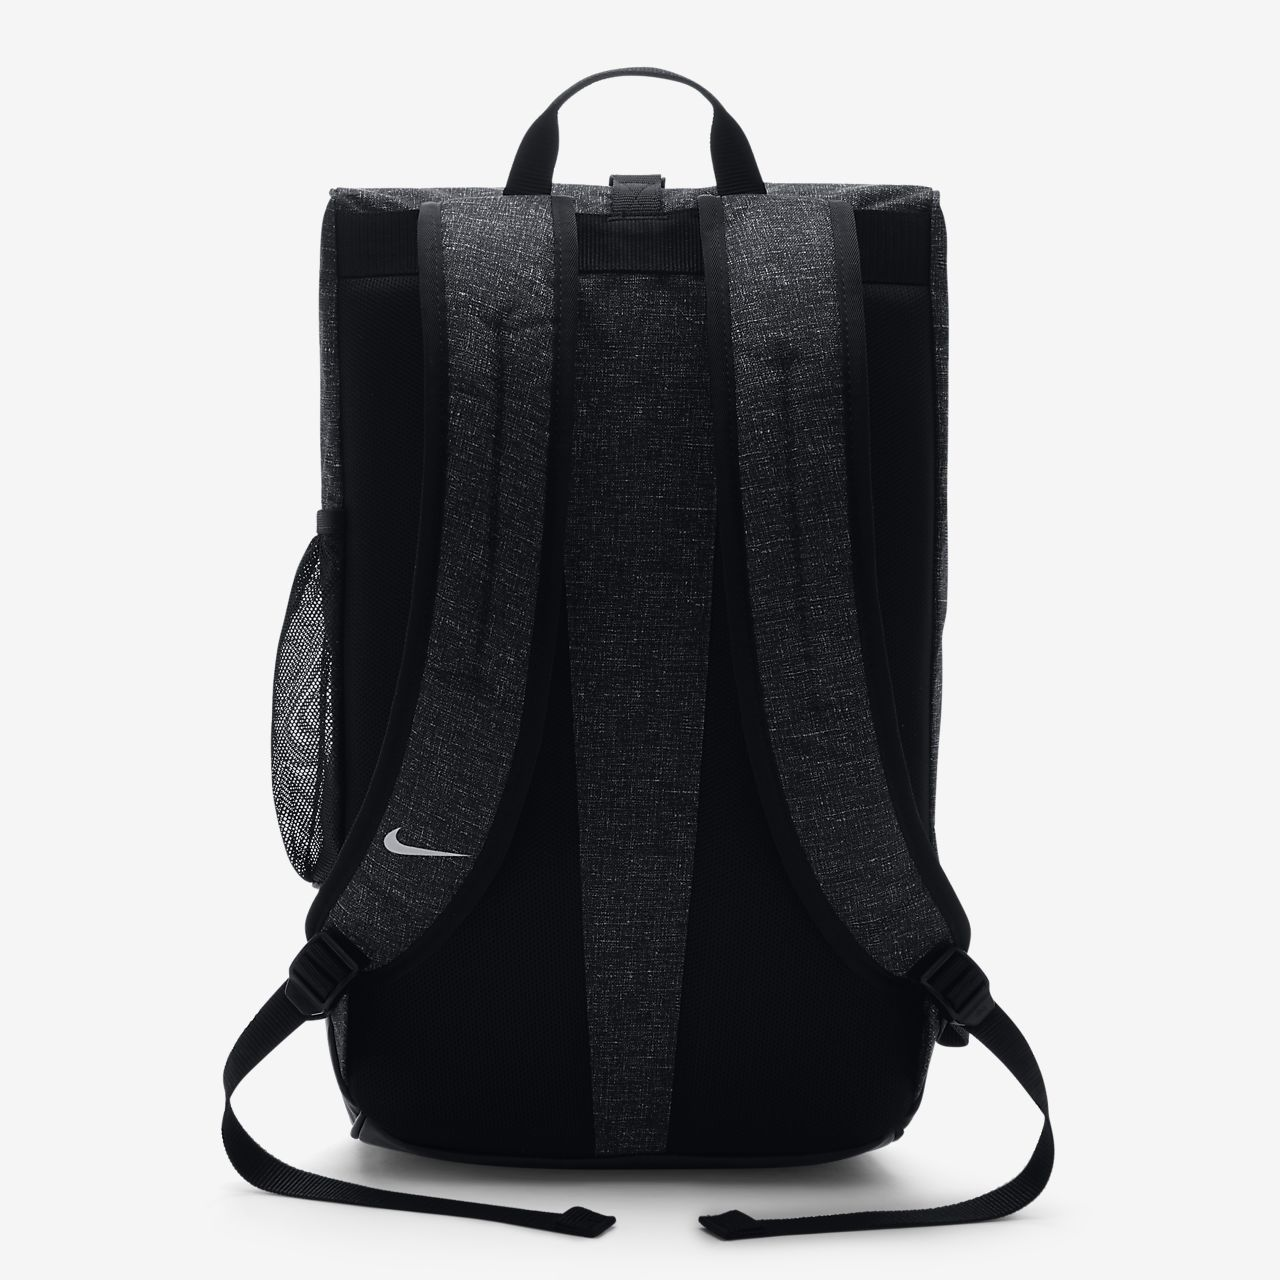 Nike Sport Backpack Nike GB